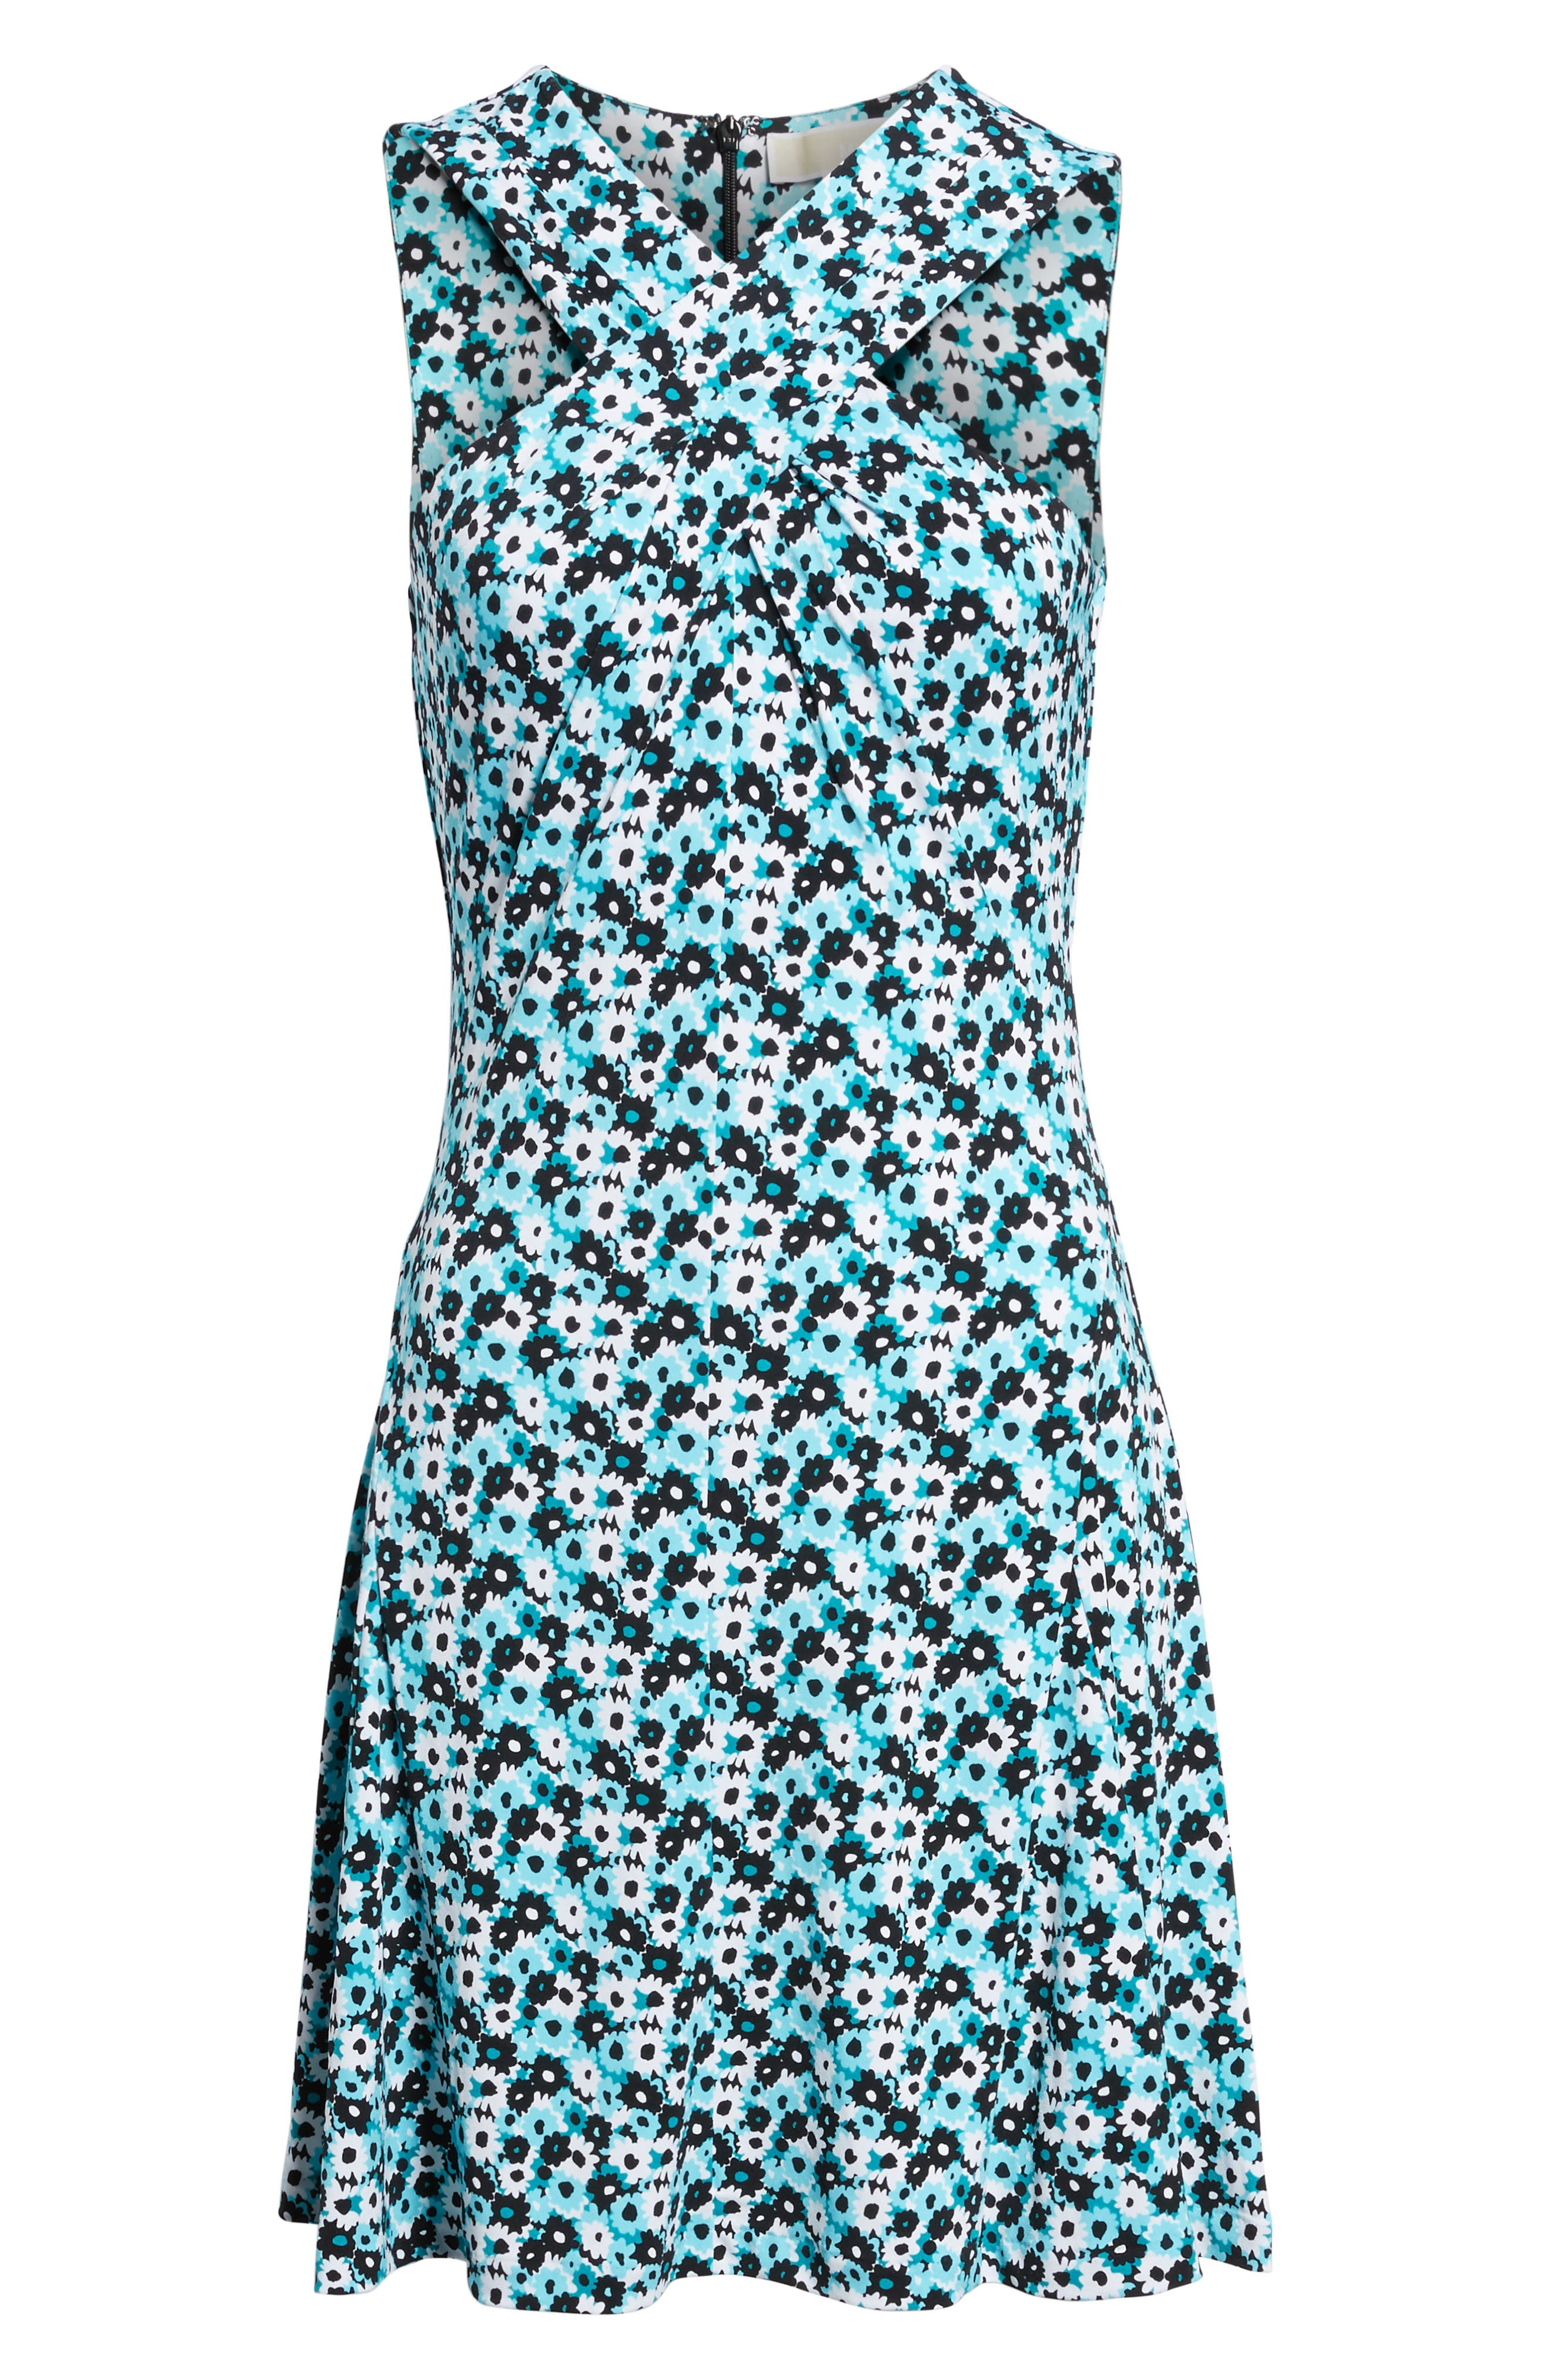 Carnations Cross Neck Fit and Flare Dress,                             Alternate thumbnail 11, color,